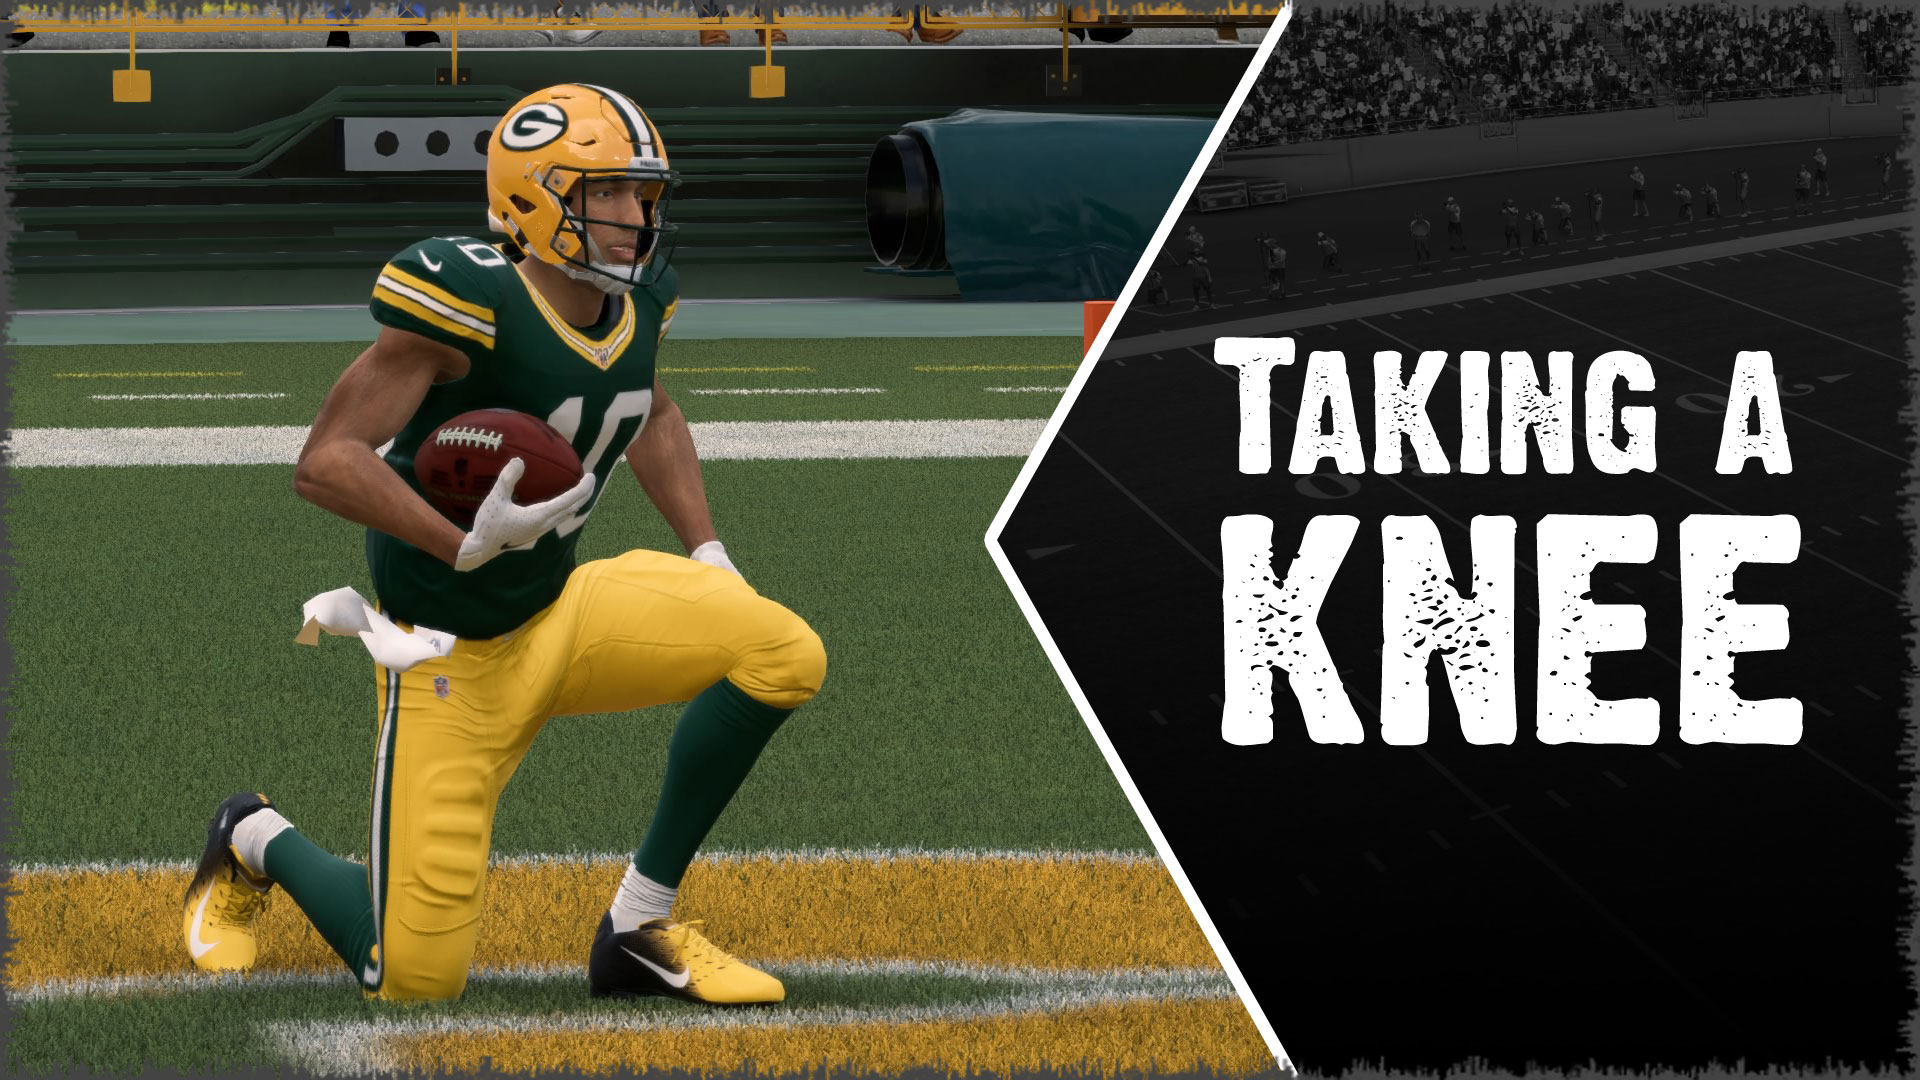 Taking a knee on kickoffs in Madden often results in better field position than a return.